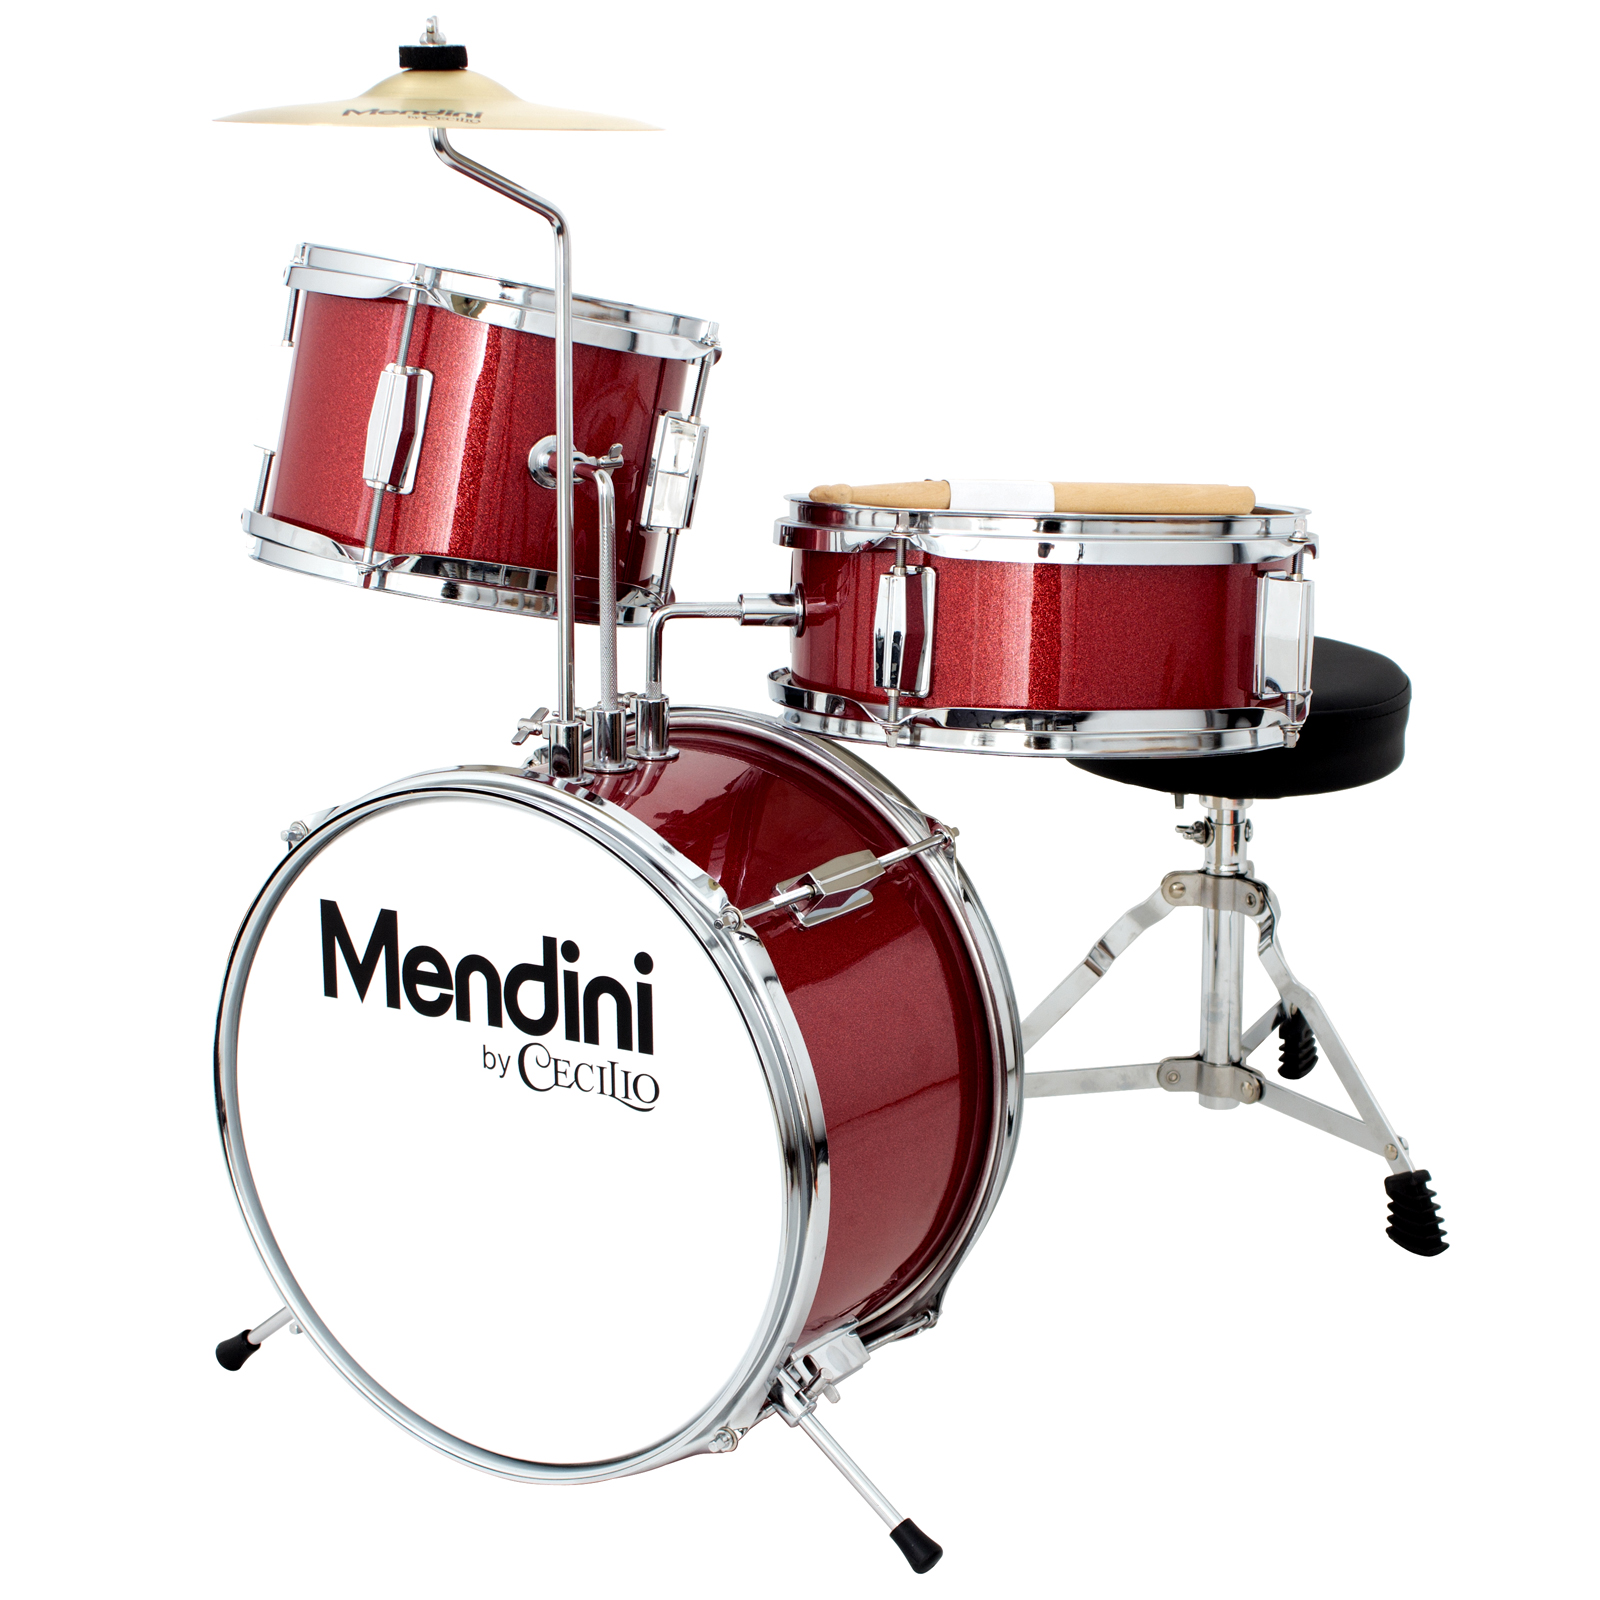 Mendini by Cecilio 13 Inch 3-Piece Kids   Junior Drum Set with Adjustable Throne, Cymbal, Pedal & Drumsticks,... by Cecilio Musical Instruments